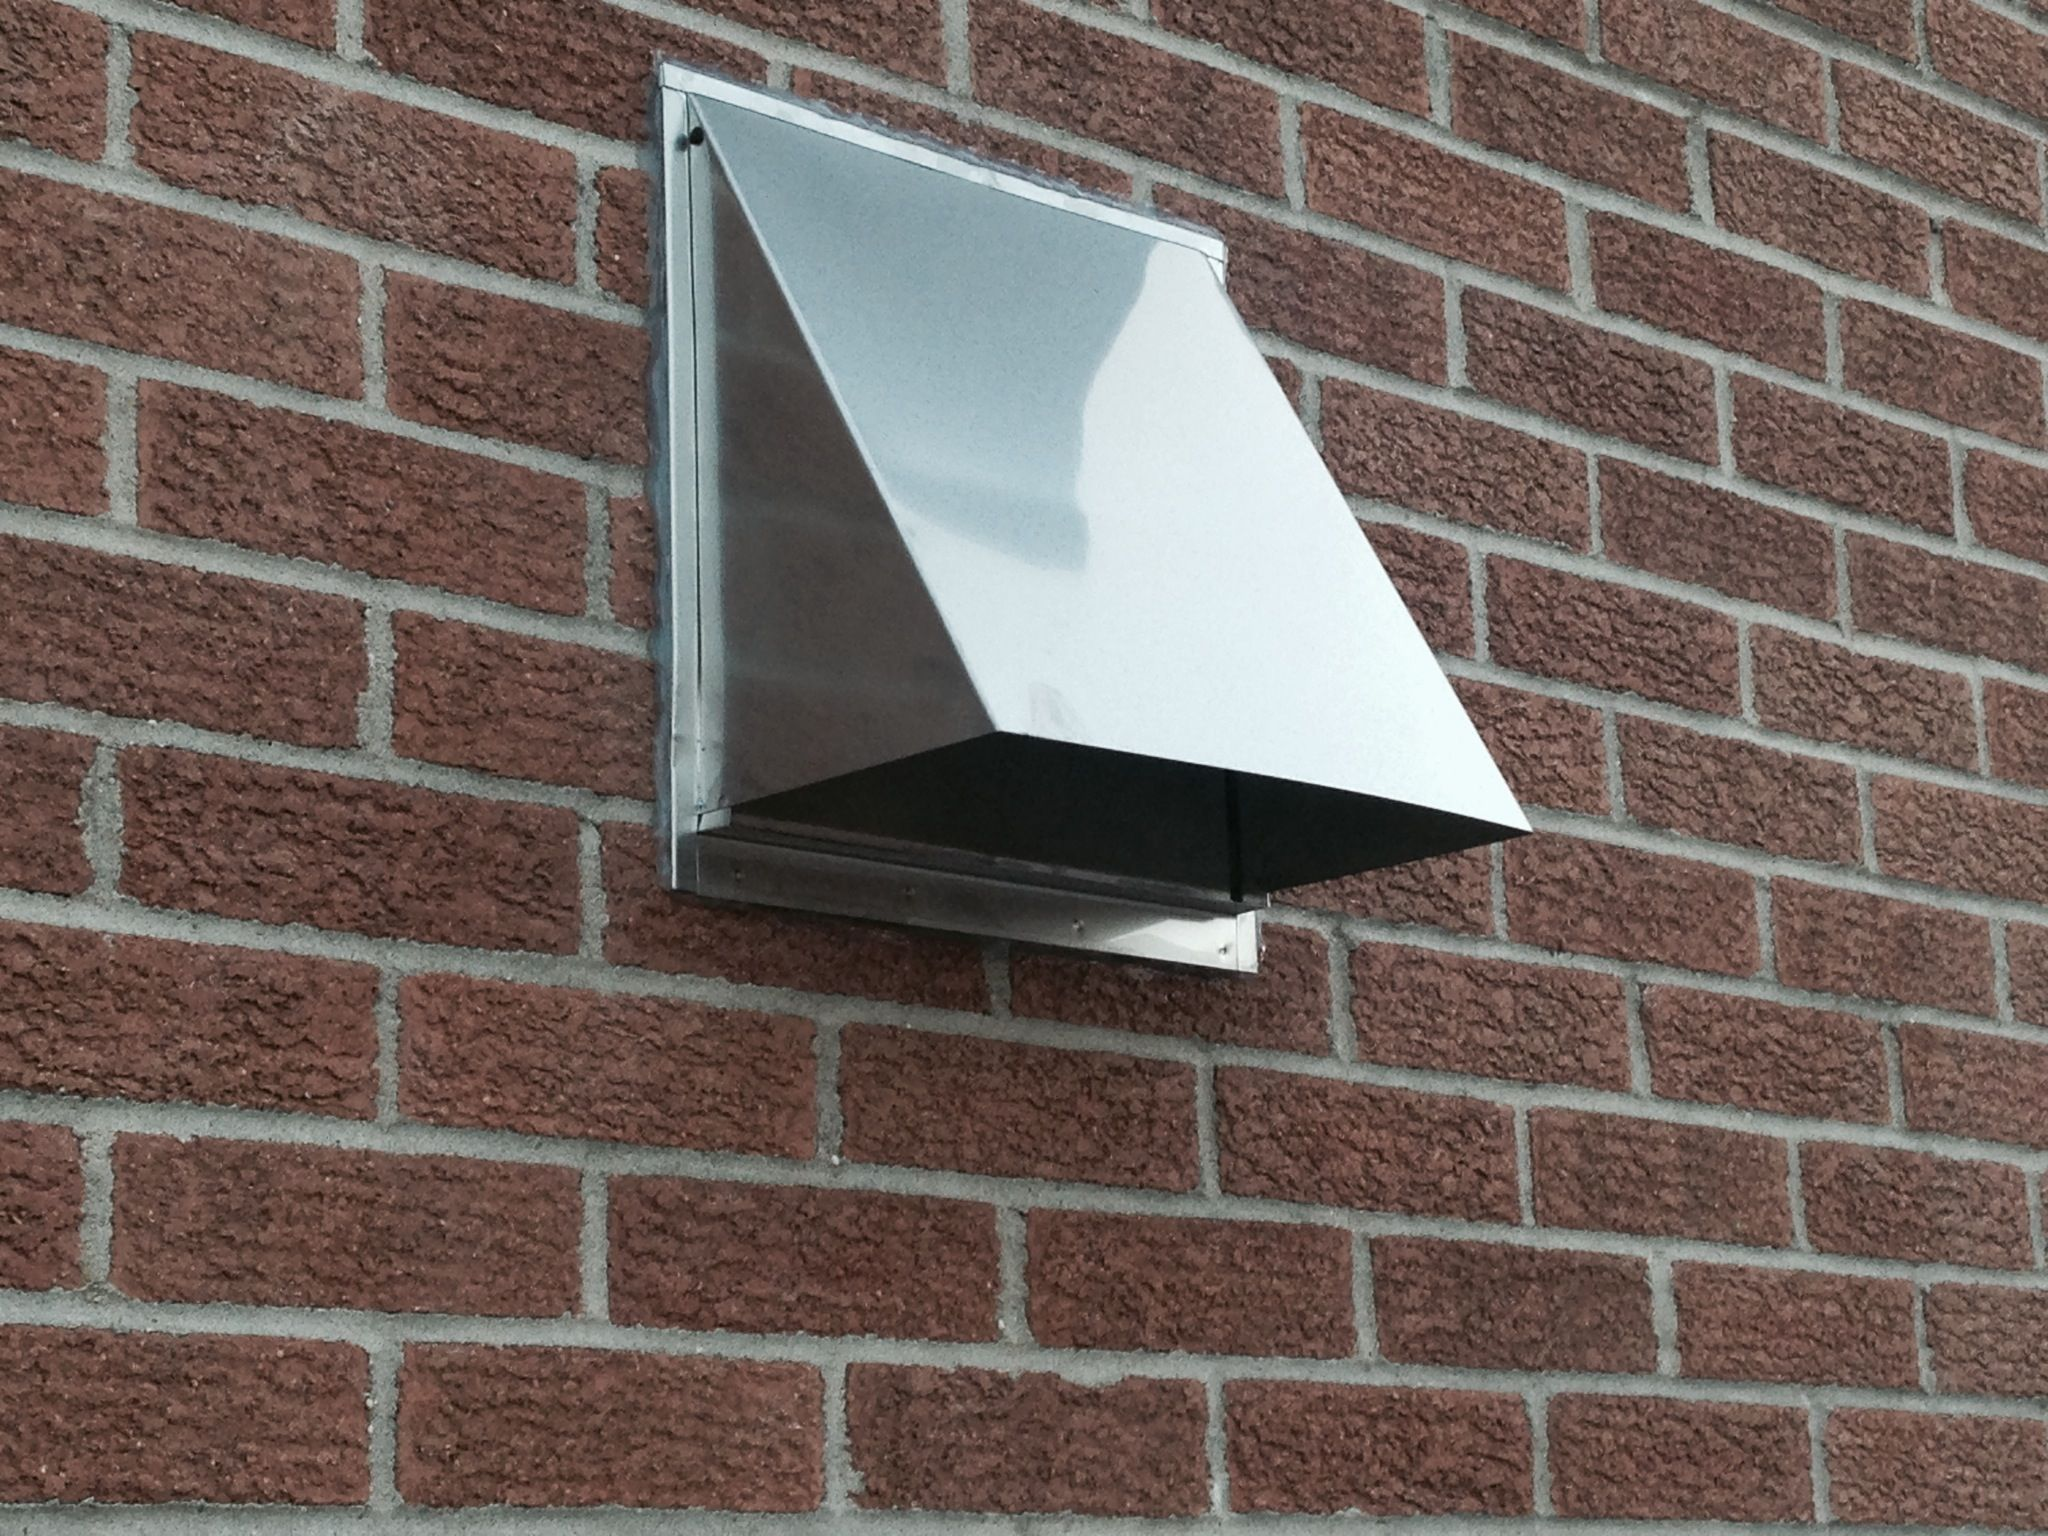 Exterior Wall Vent Covers Wall Coverings Pinterest Vent Covers Exterio